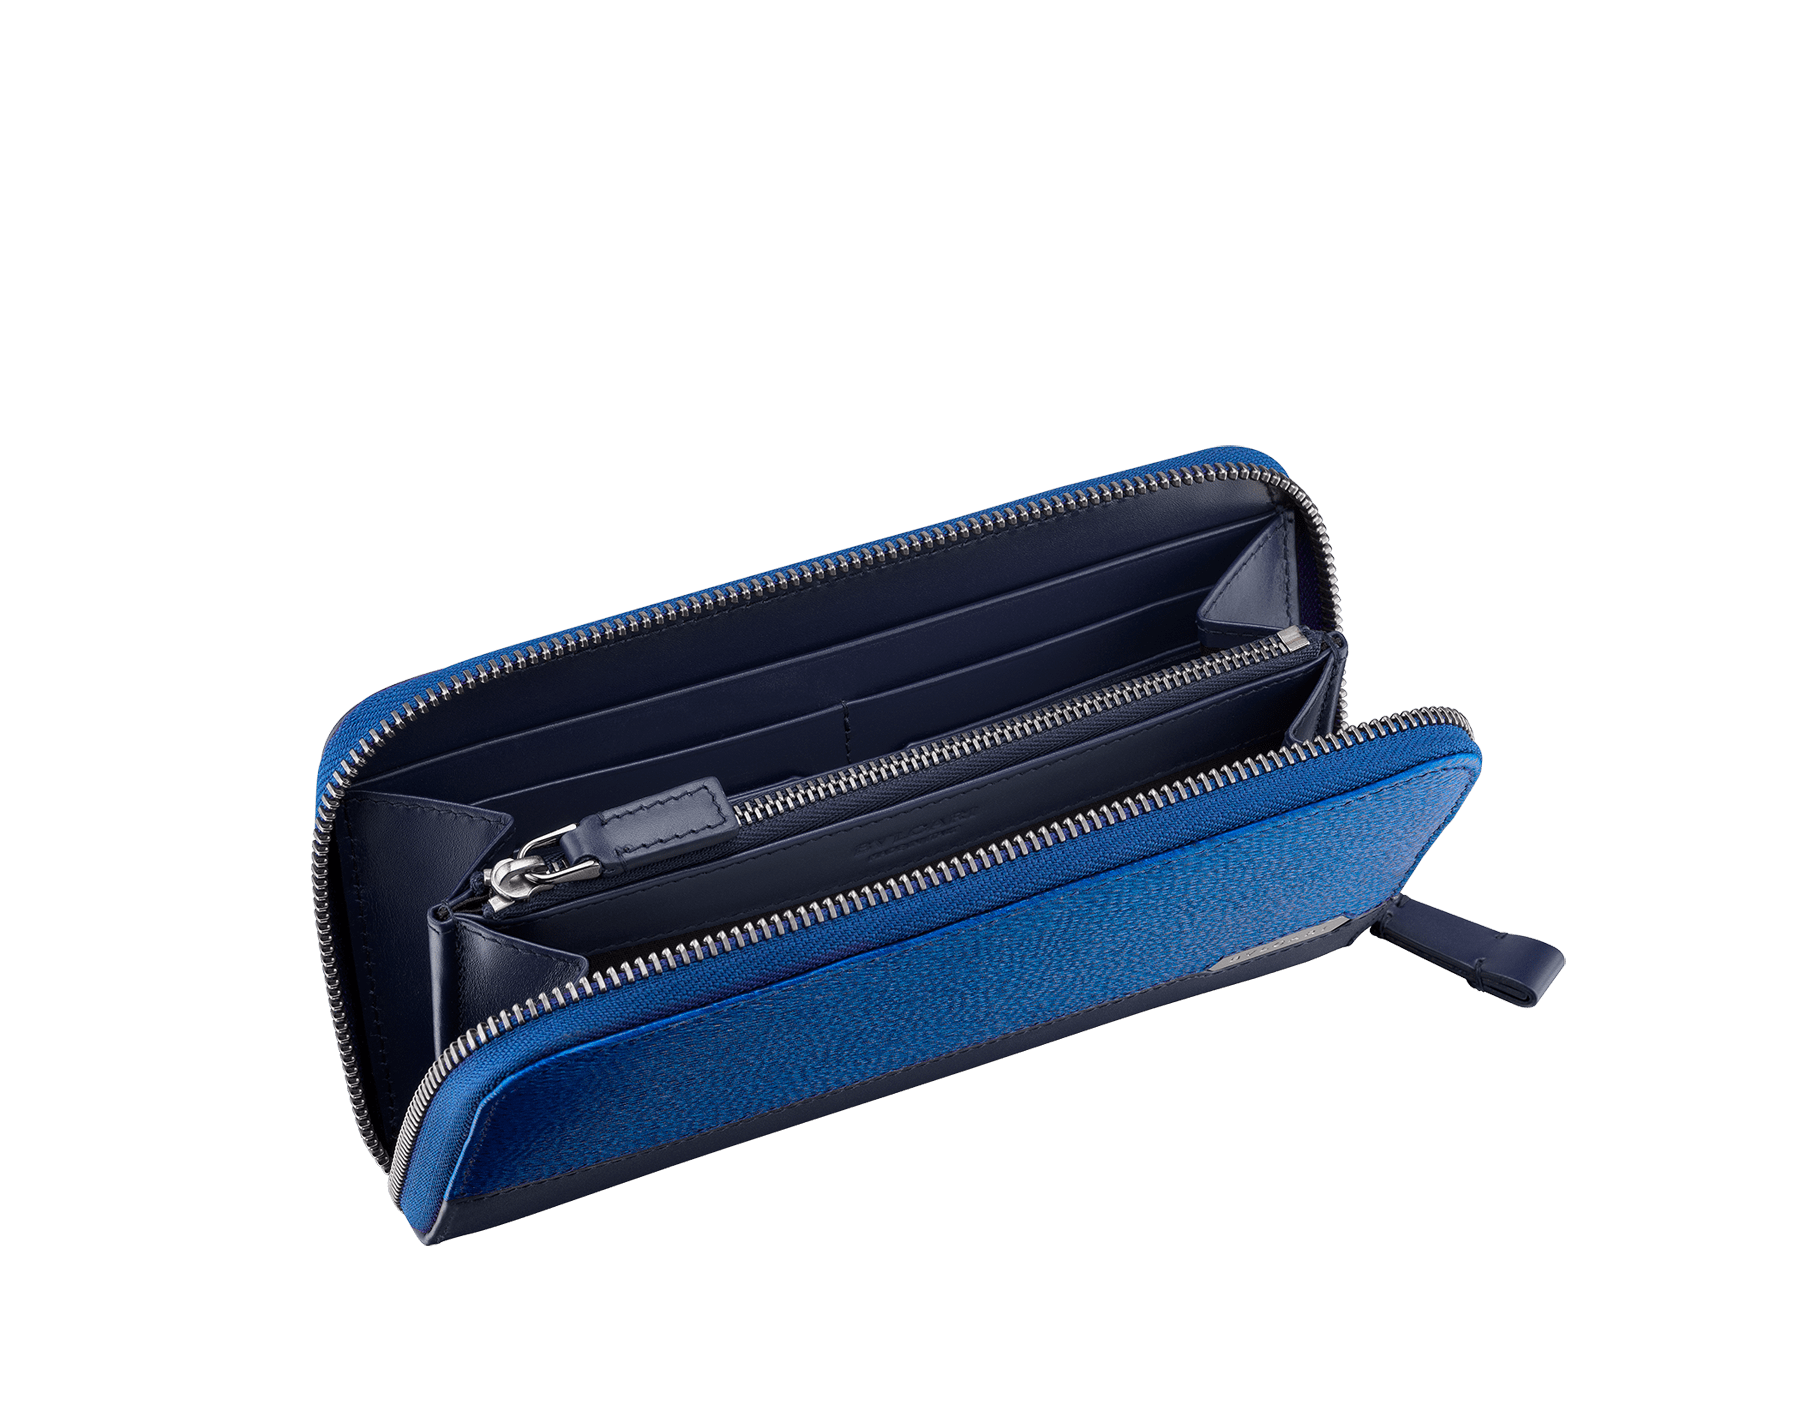 Serpenti Scaglie men's zipped wallet in cobalt tourmaline grazed calf leather and dark denim calf leather. Bvlgari logo engraved on the hexagonal scaglie metal plate finished in dark ruthenium. 288604 image 2